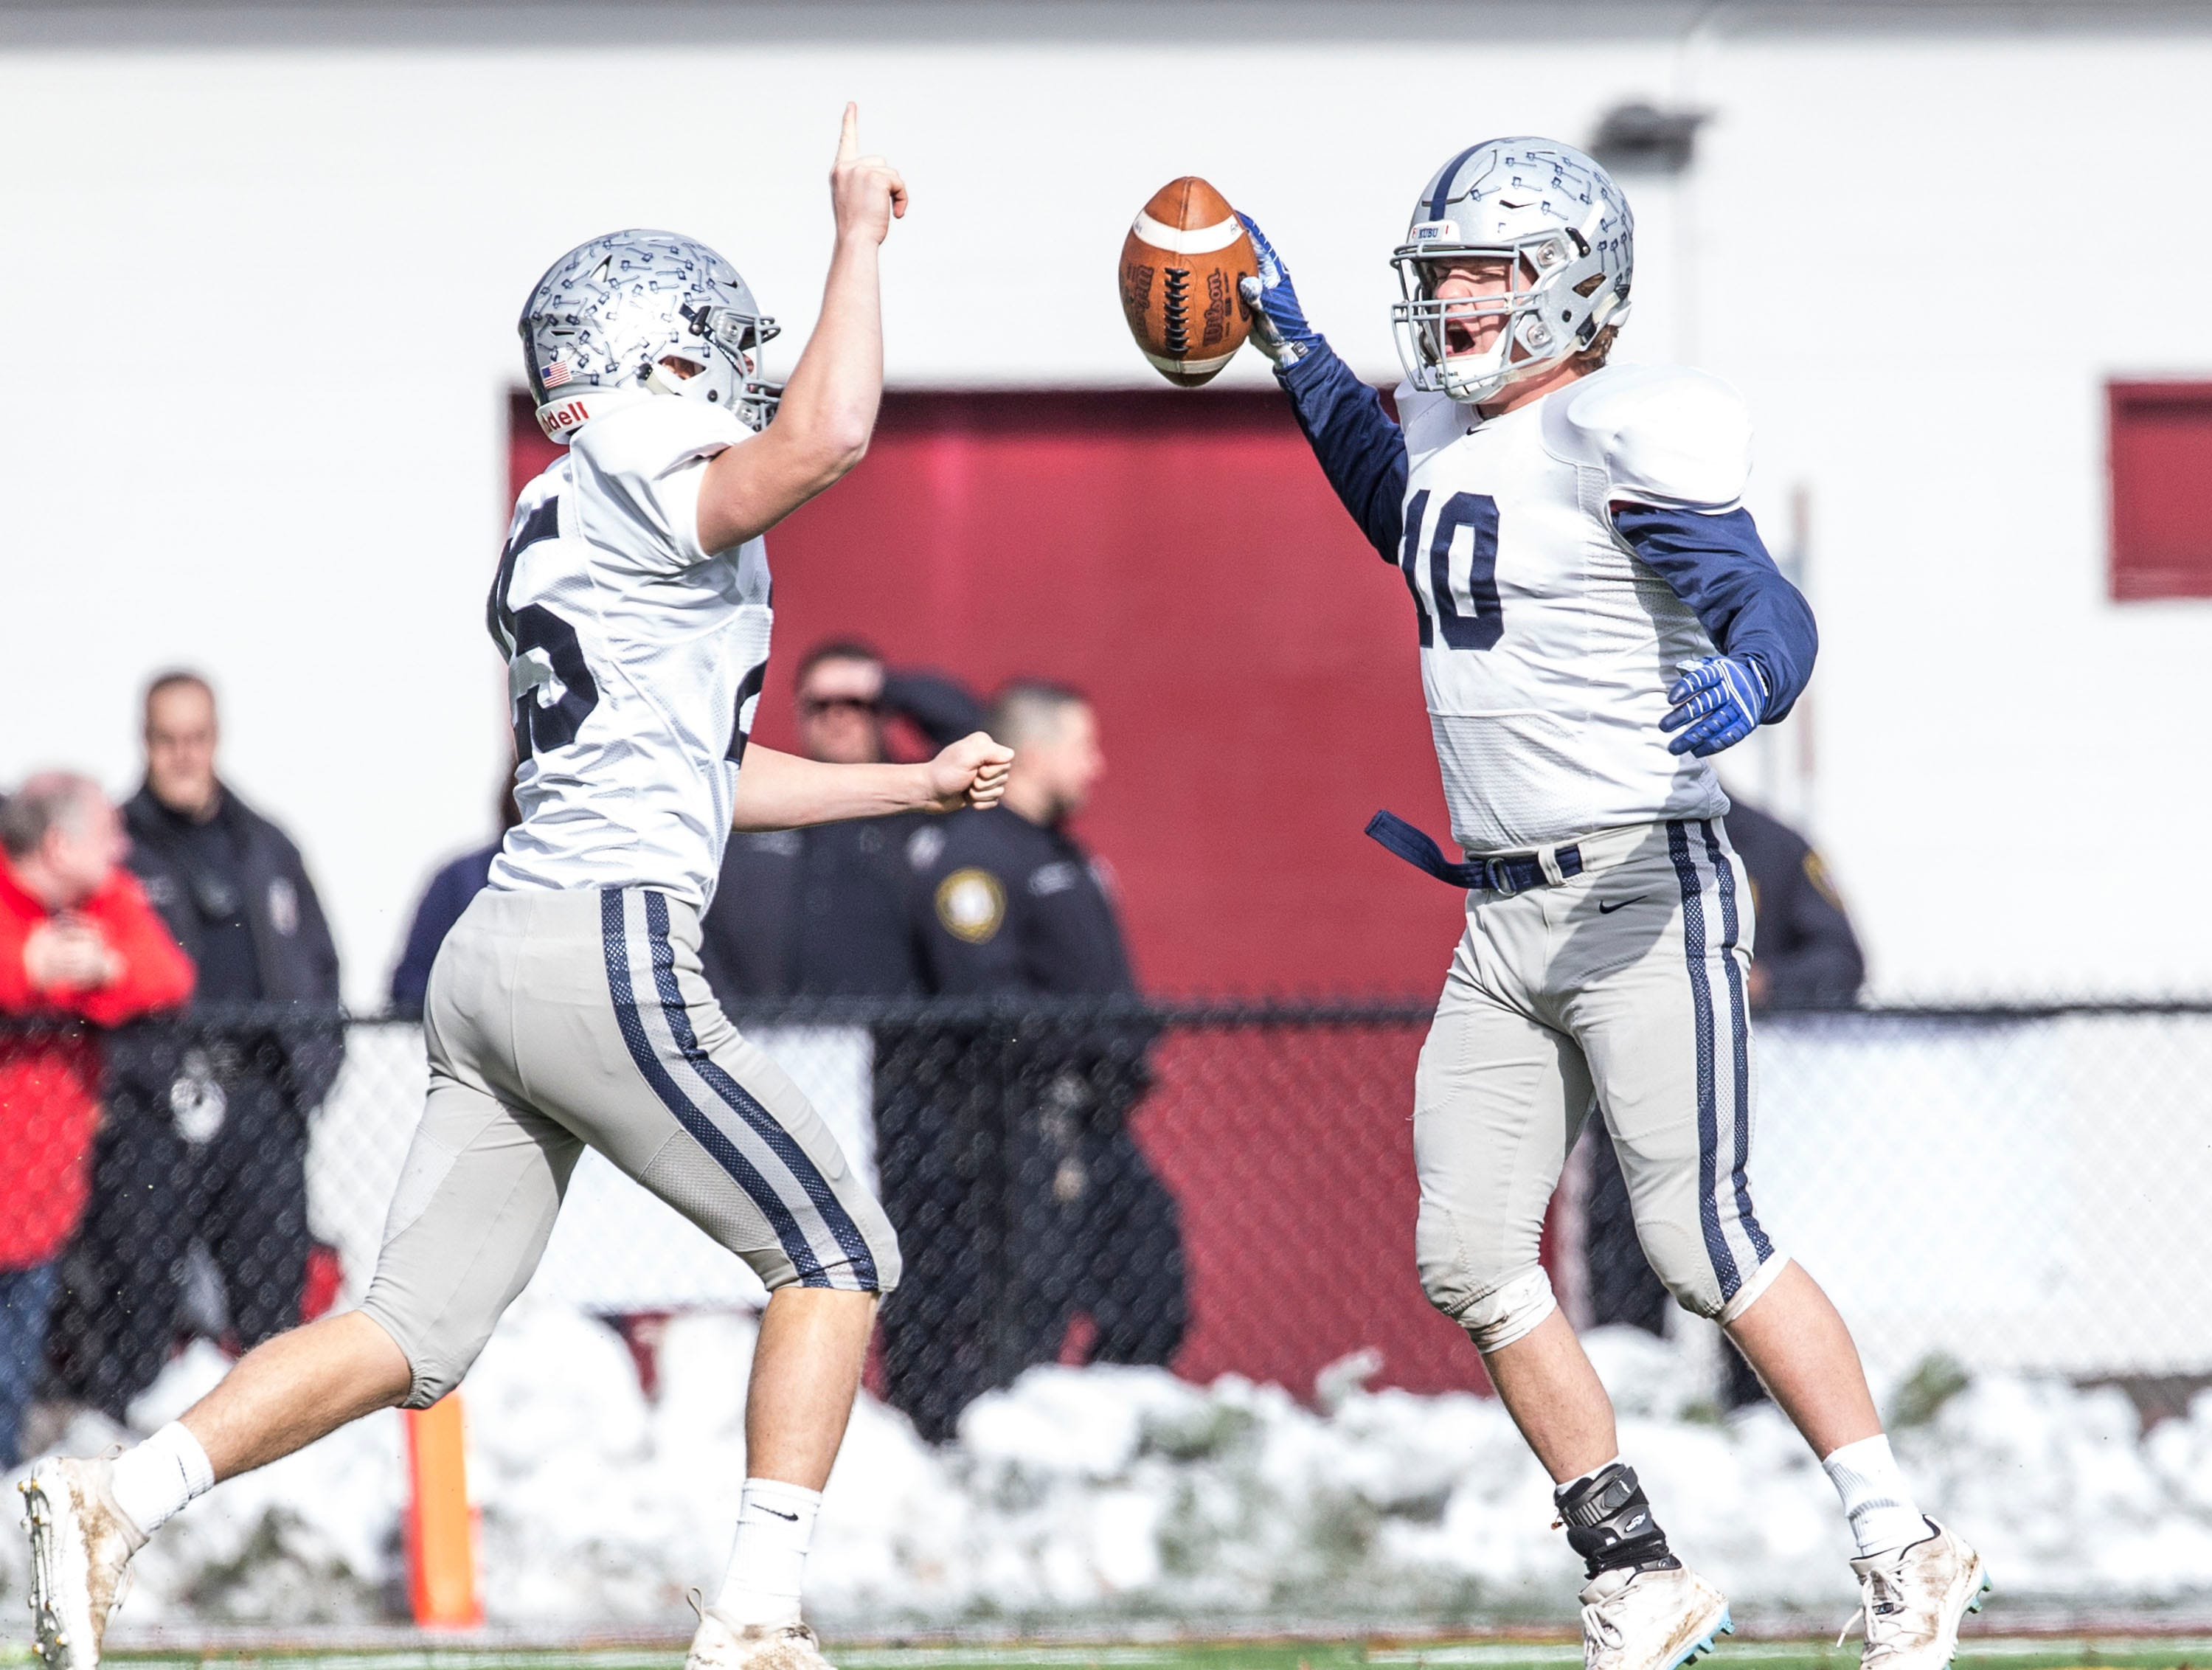 Manasquan falls to Hillside in the NJSIAA Central Group II championship football game. 